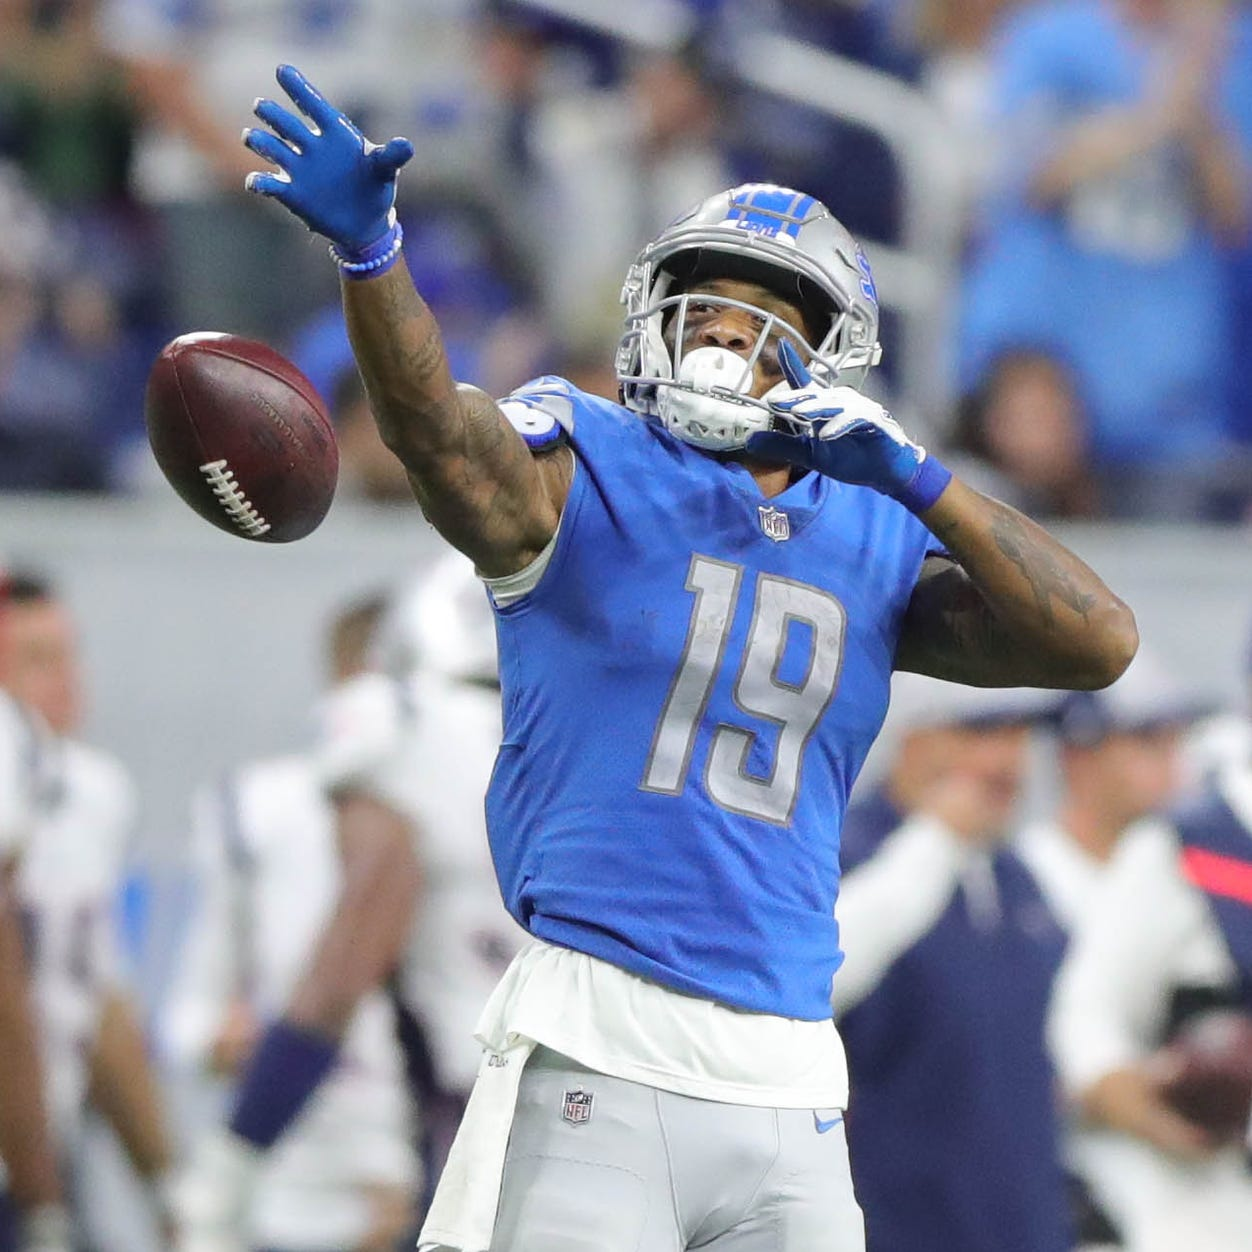 Mitch Albom: Detroit Lions' domination of Patriots anomaly or new trend?